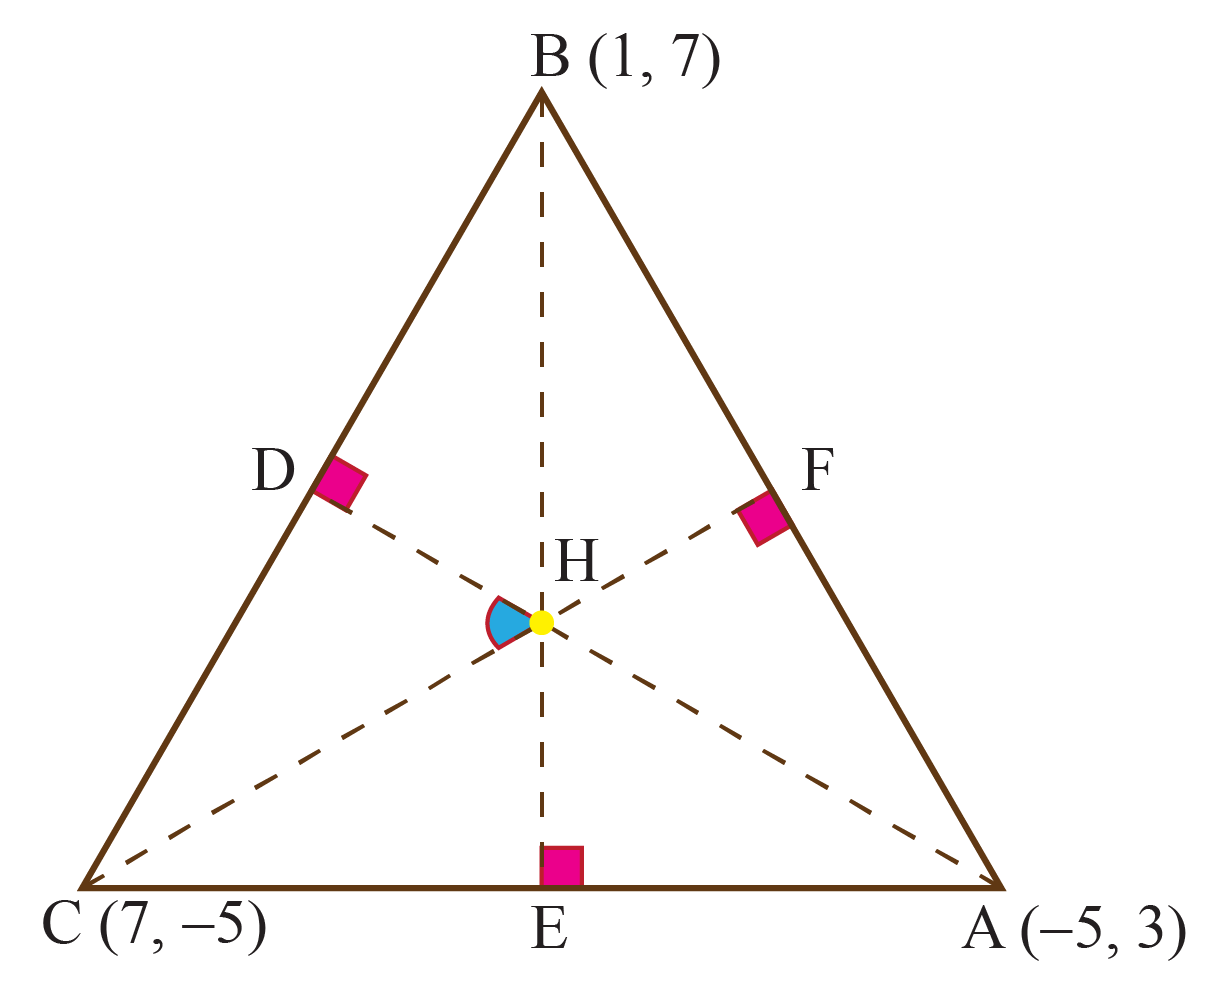 orthocenter of triangle ABC